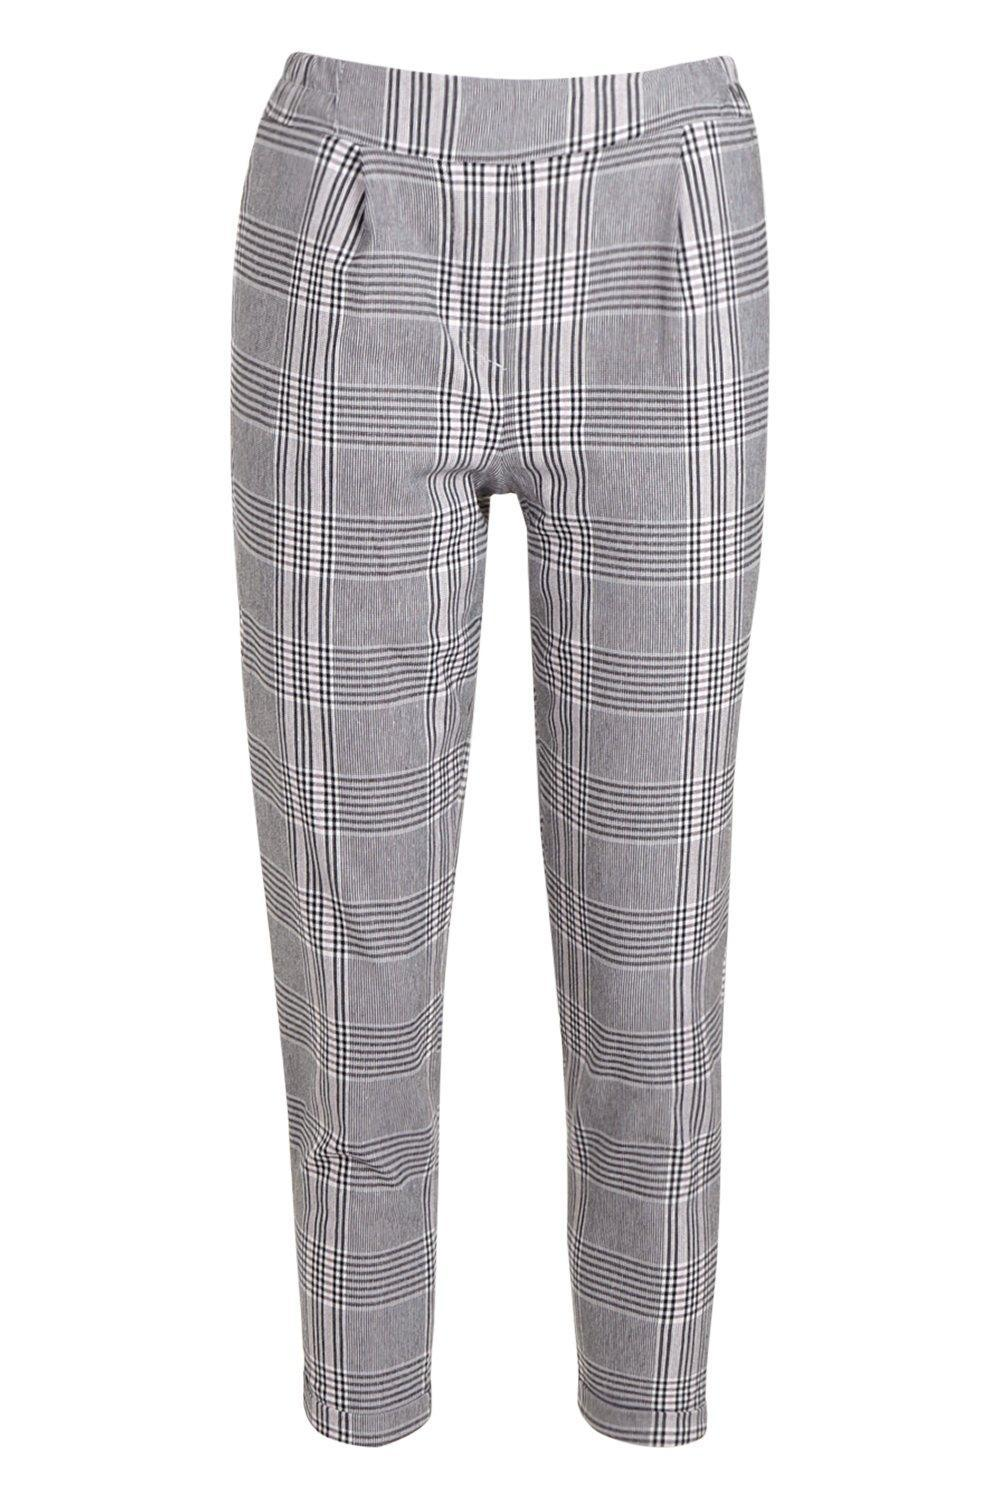 a0e9a63f8e Boohoo Prince Of Wales Check Tapered Pants in Gray - Lyst